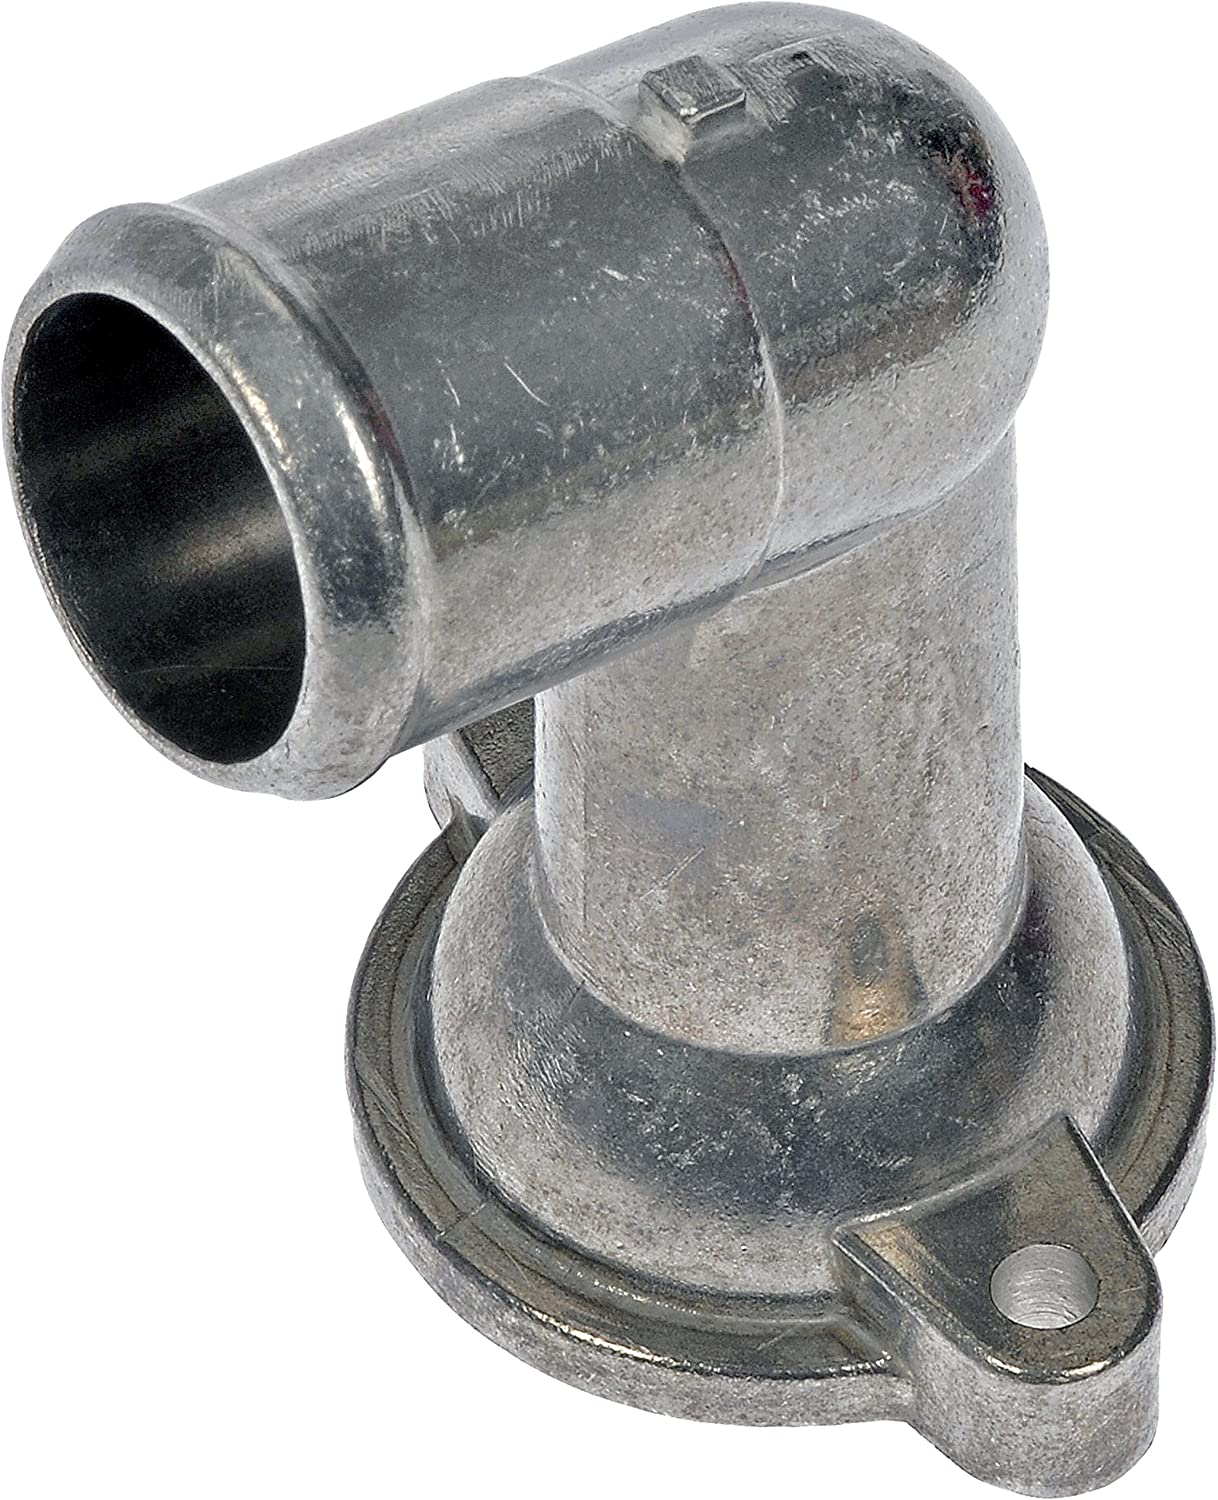 Dorman 902-1037 Engine safety Coolant SEAL limited product Housing Thermostat